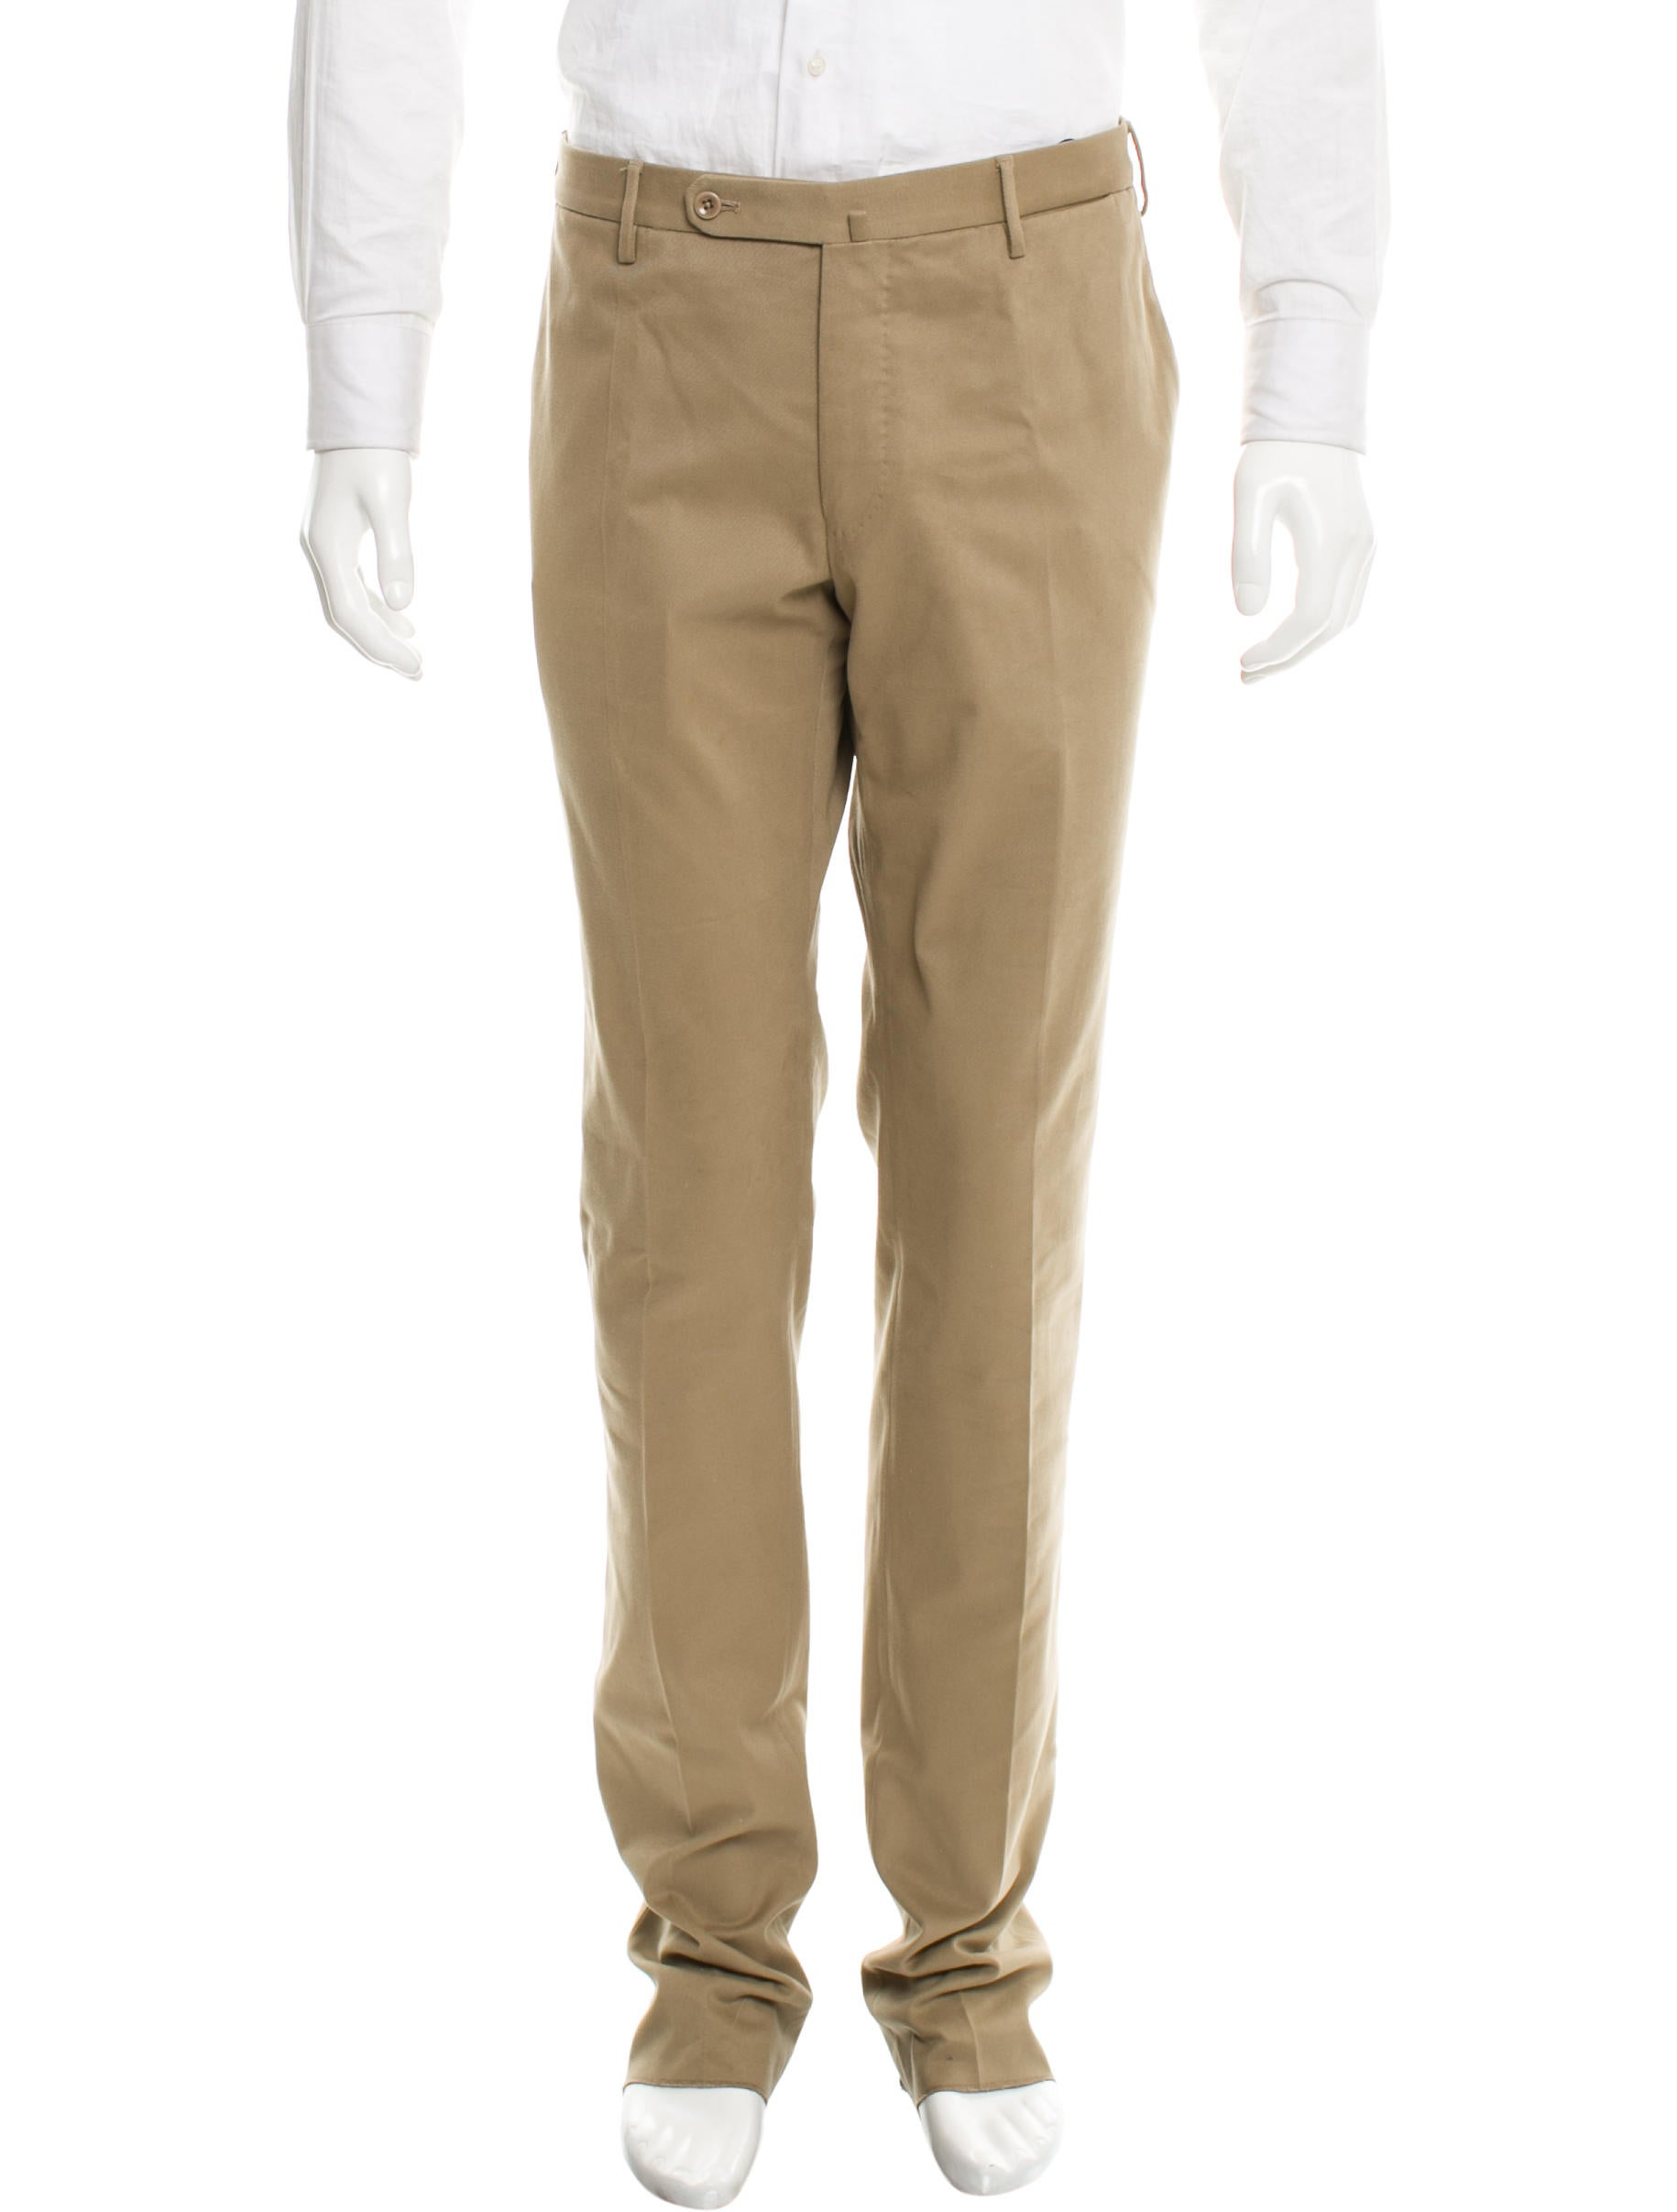 Find great deals on eBay for skinny mens chino pants. Shop with confidence.